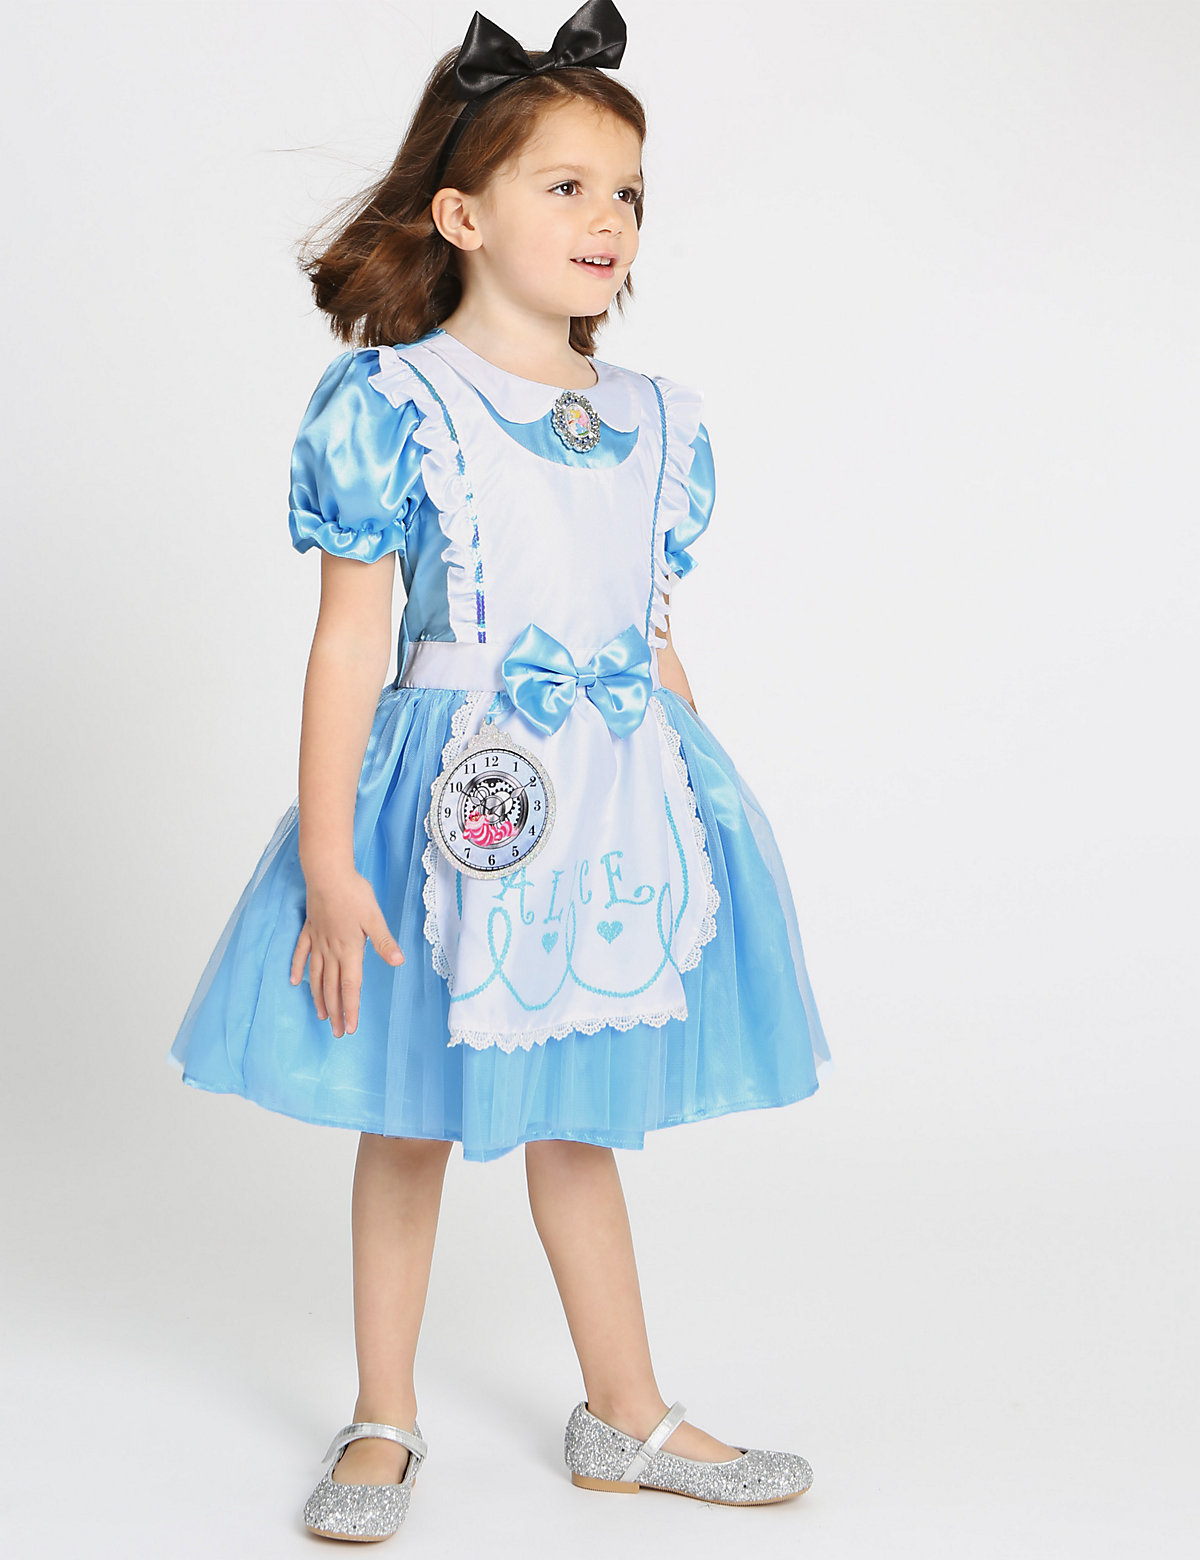 Kids Alice in Wonderland Dress Up Costume